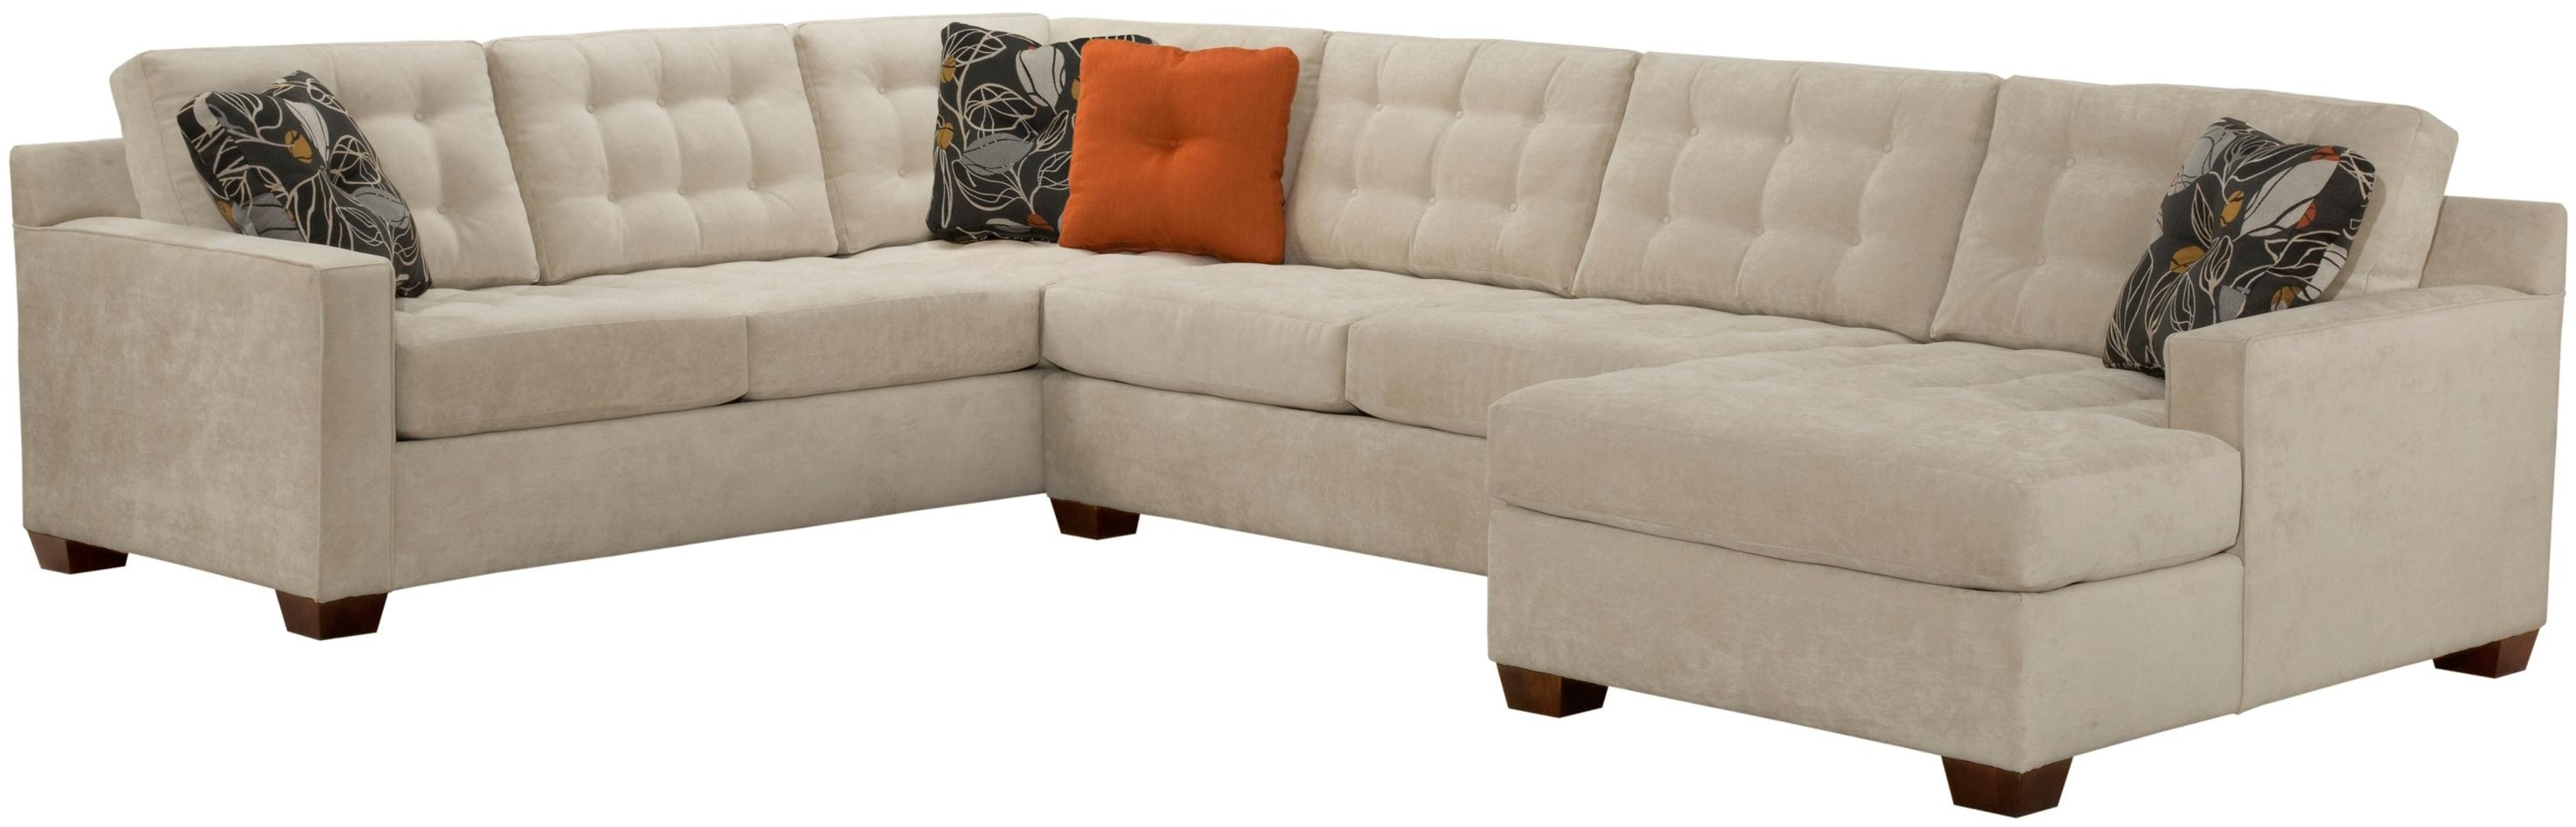 Favorite Broyhill Sectional Sofas Inside Broyhill Furniture Tribeca Contemporary Sectional Sofa With Left (View 7 of 20)